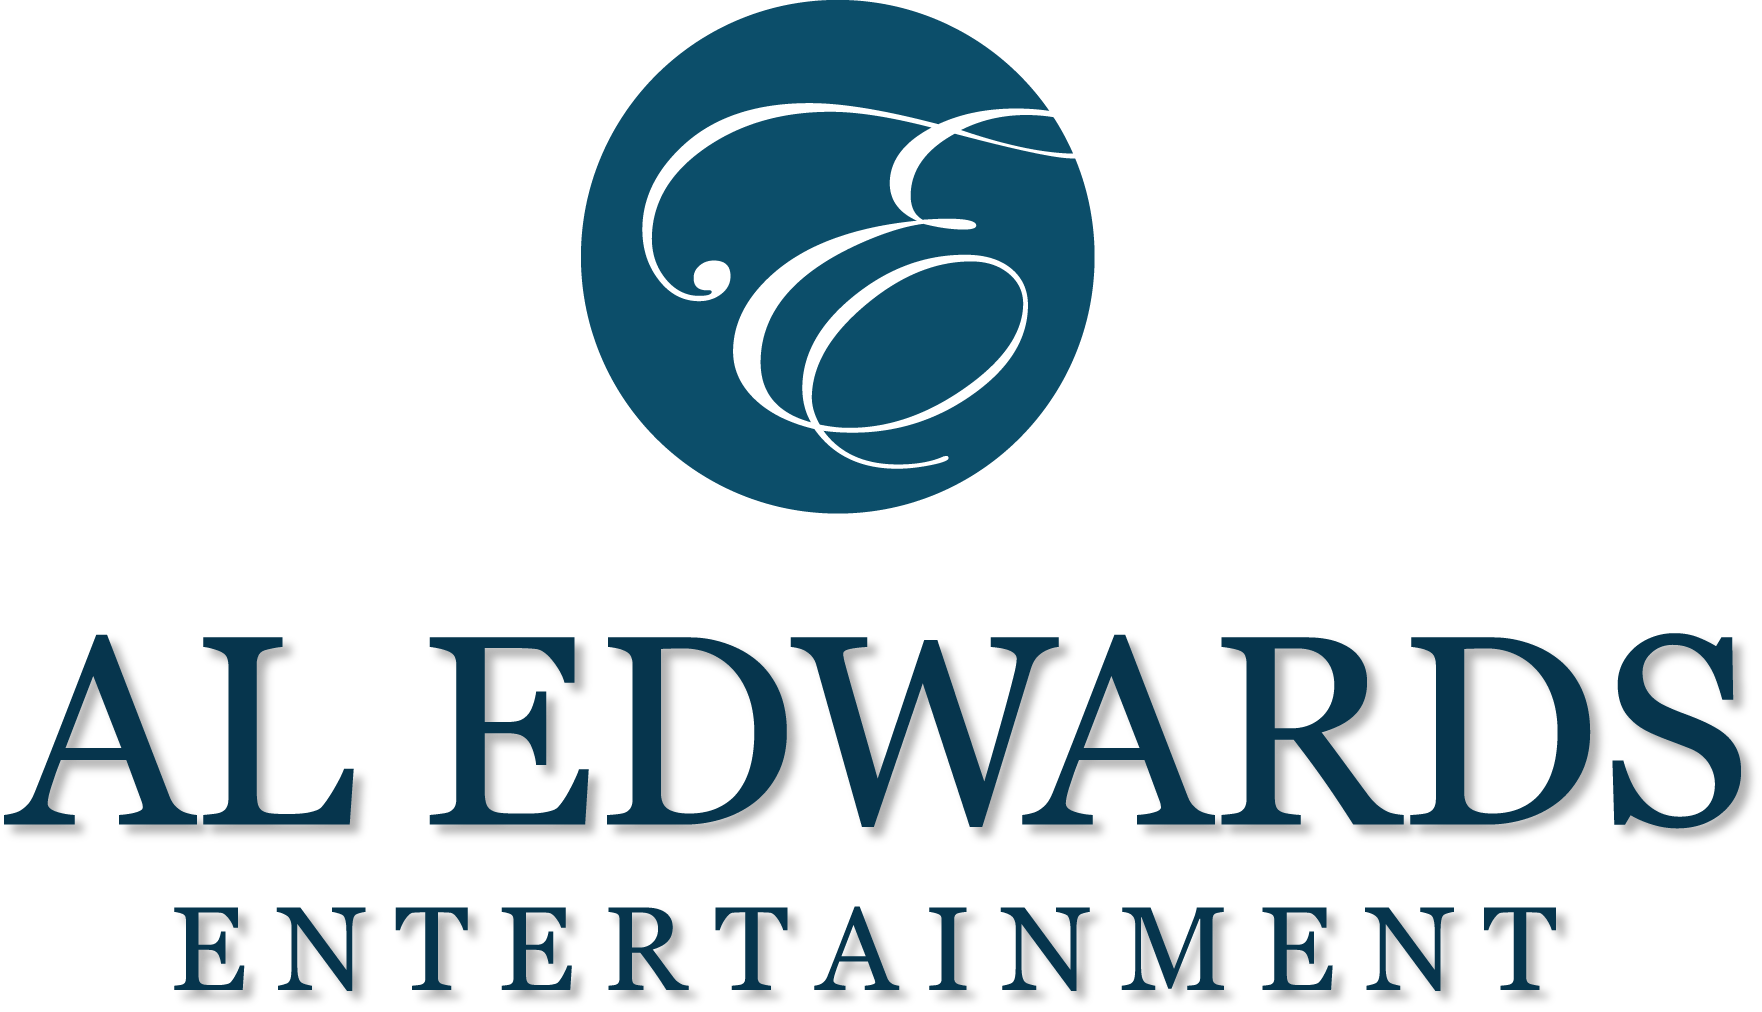 Al Edwards Entertainment logo